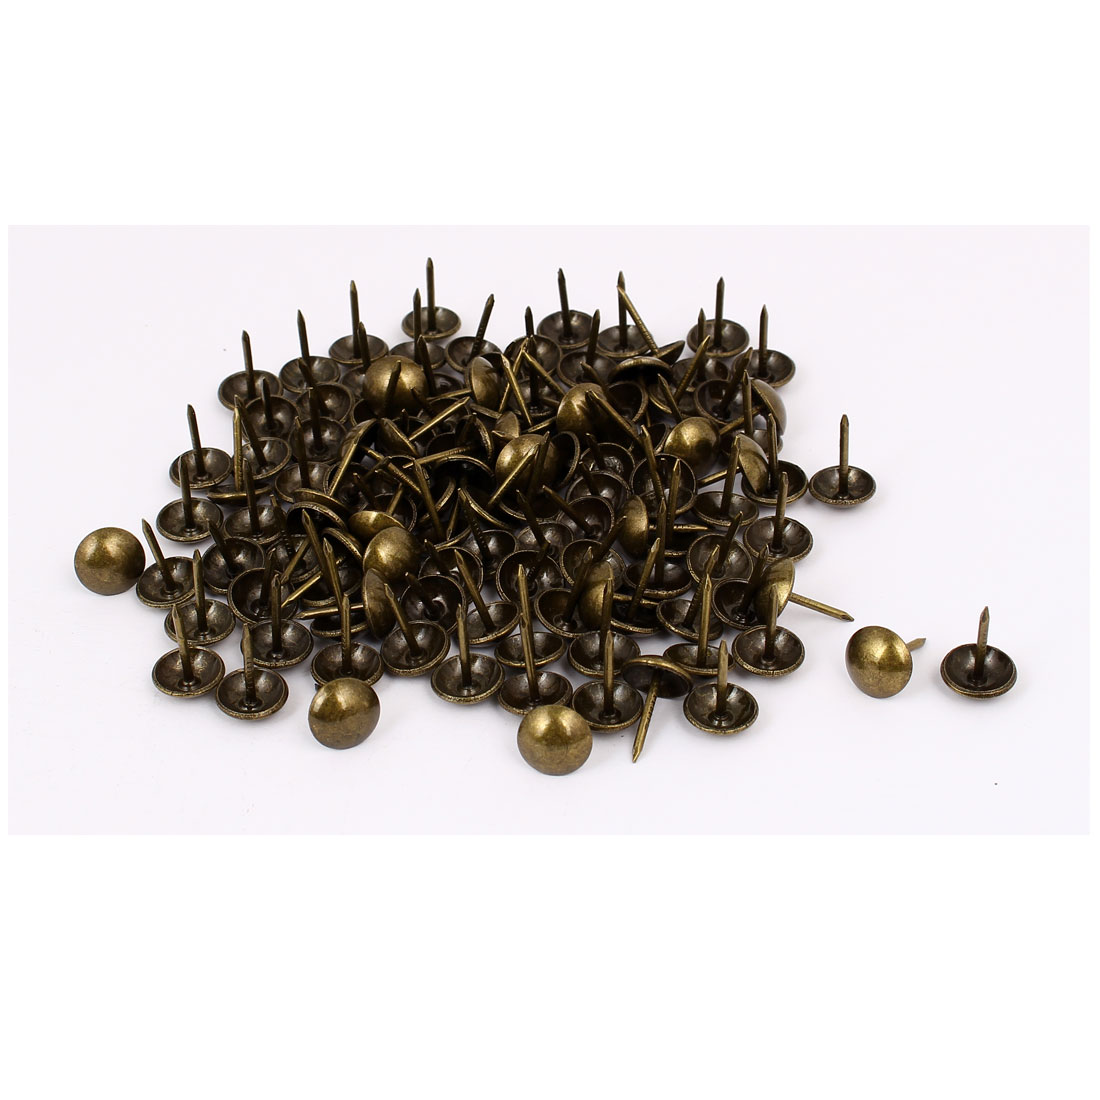 "Household Metal Domed Head Upholstery Tack Nail Bronze Tone 7/16"" Dia 100pcs"